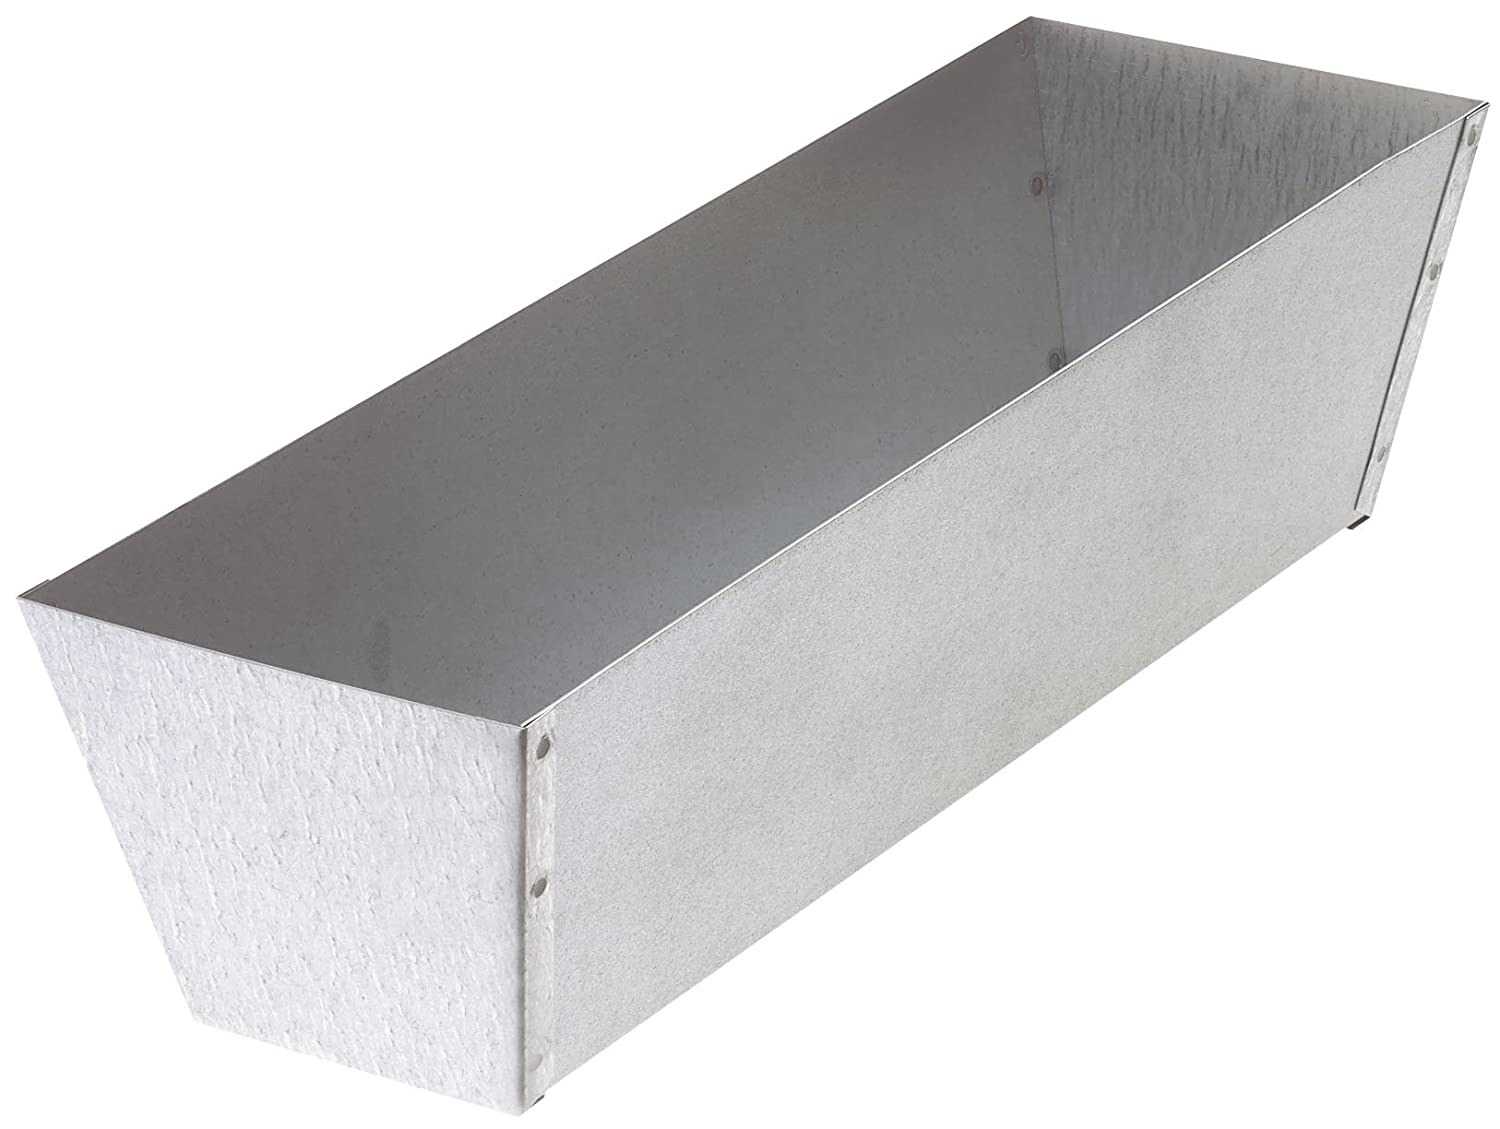 Warner 12 Galvanized Steel Drywall Mud Pan, 206 Warner Manufacturing Co.